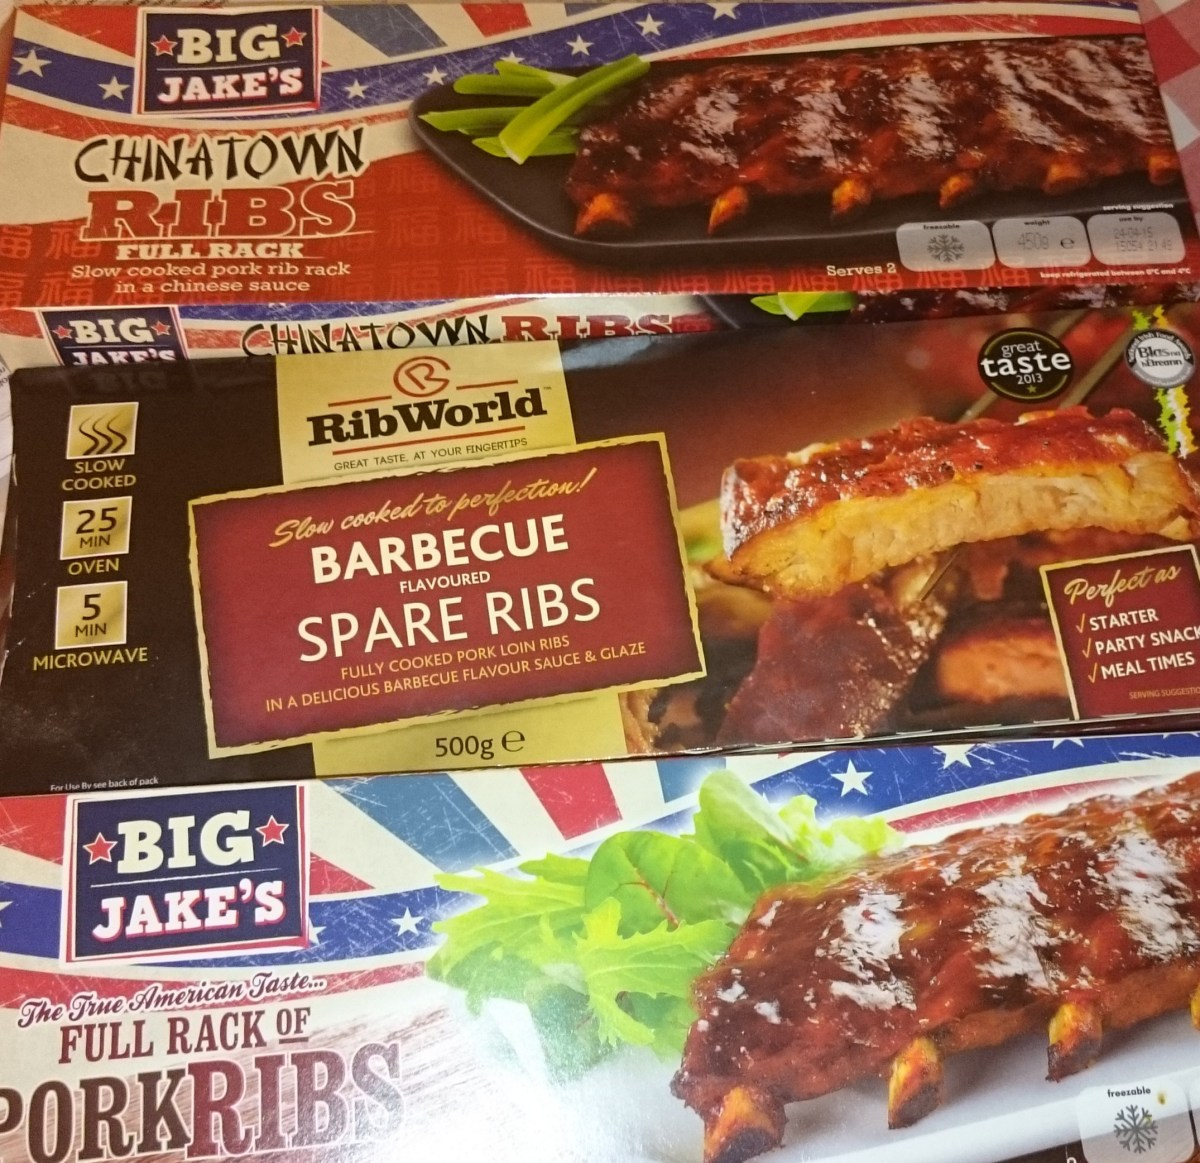 Microwave spare ribs